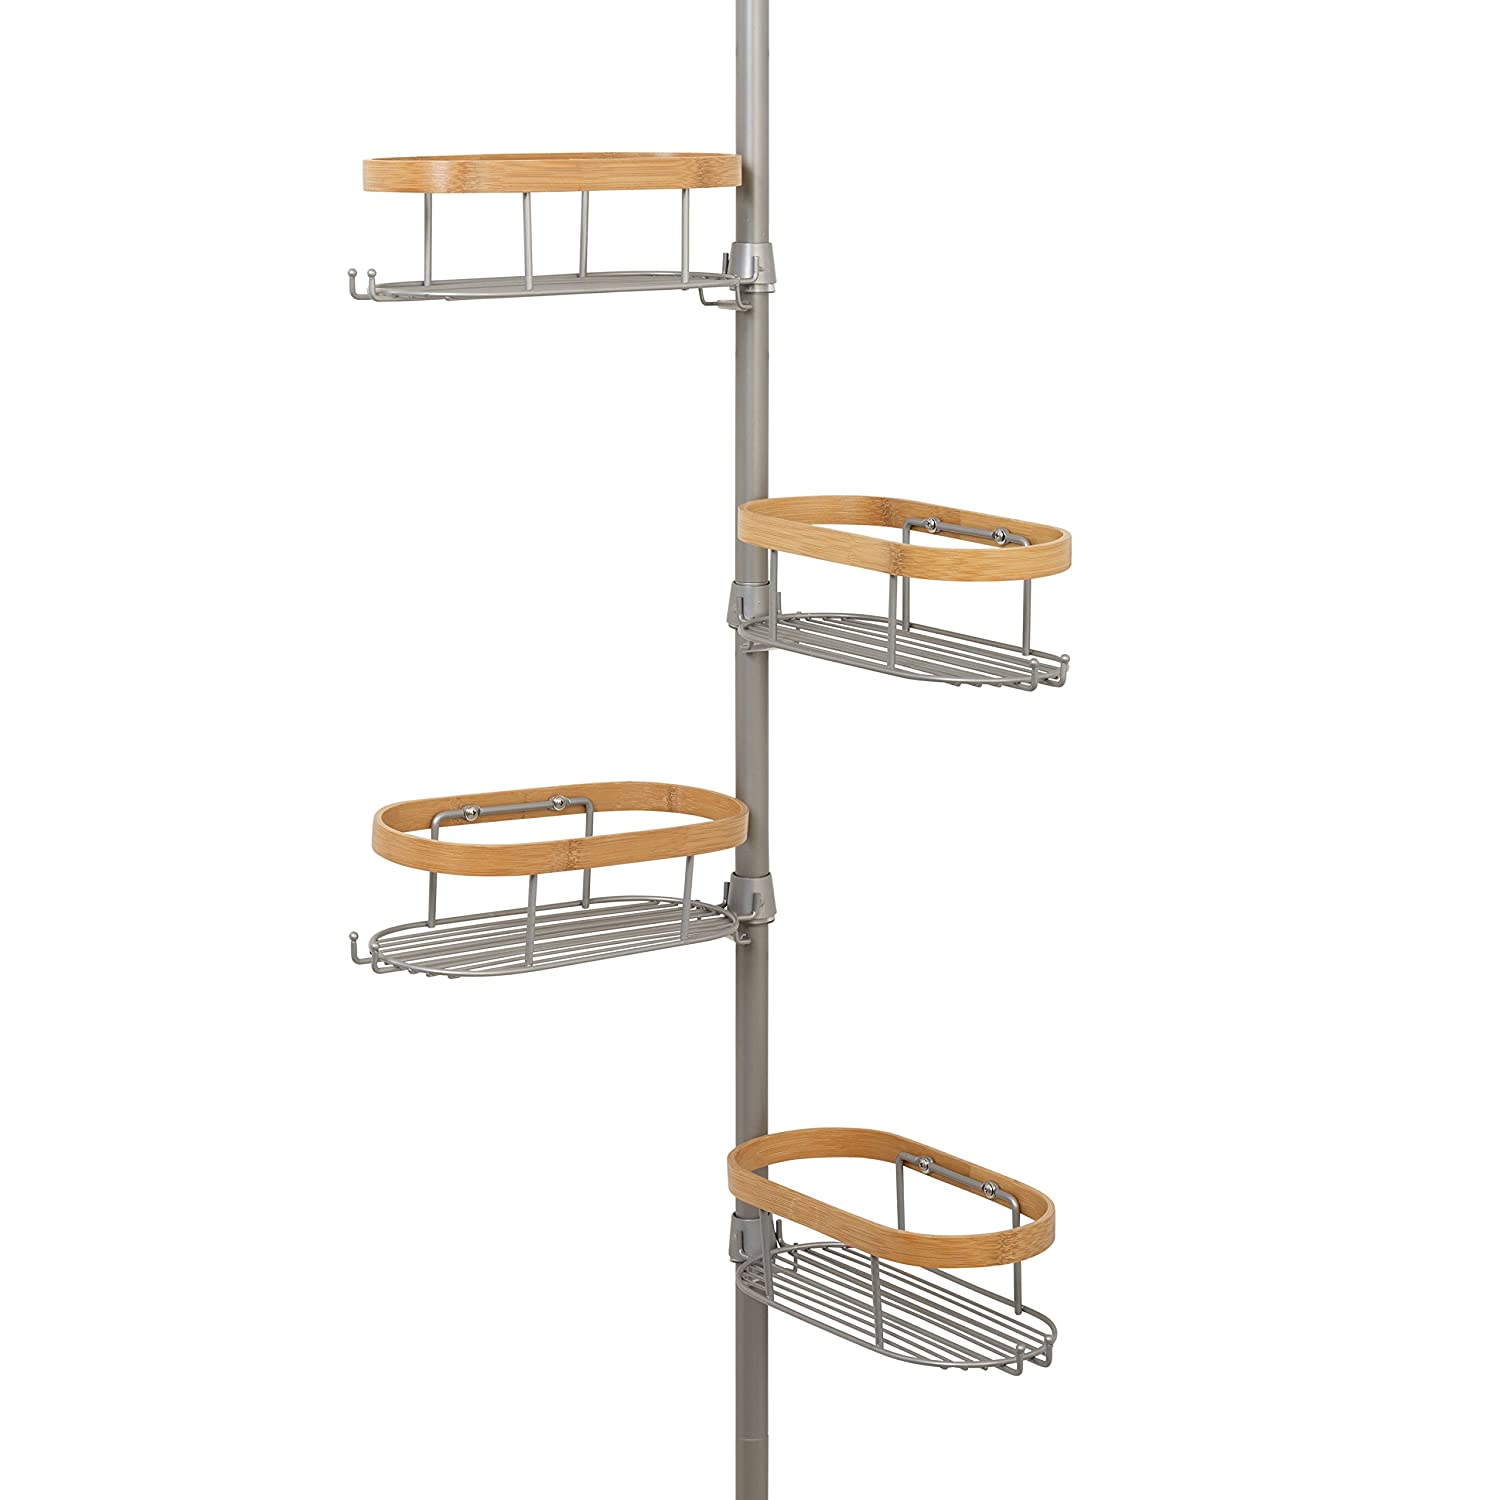 Zenna Home 2128BM Tension Corner Pole Caddy, Nickel and Bamboo Zenith Home Corp